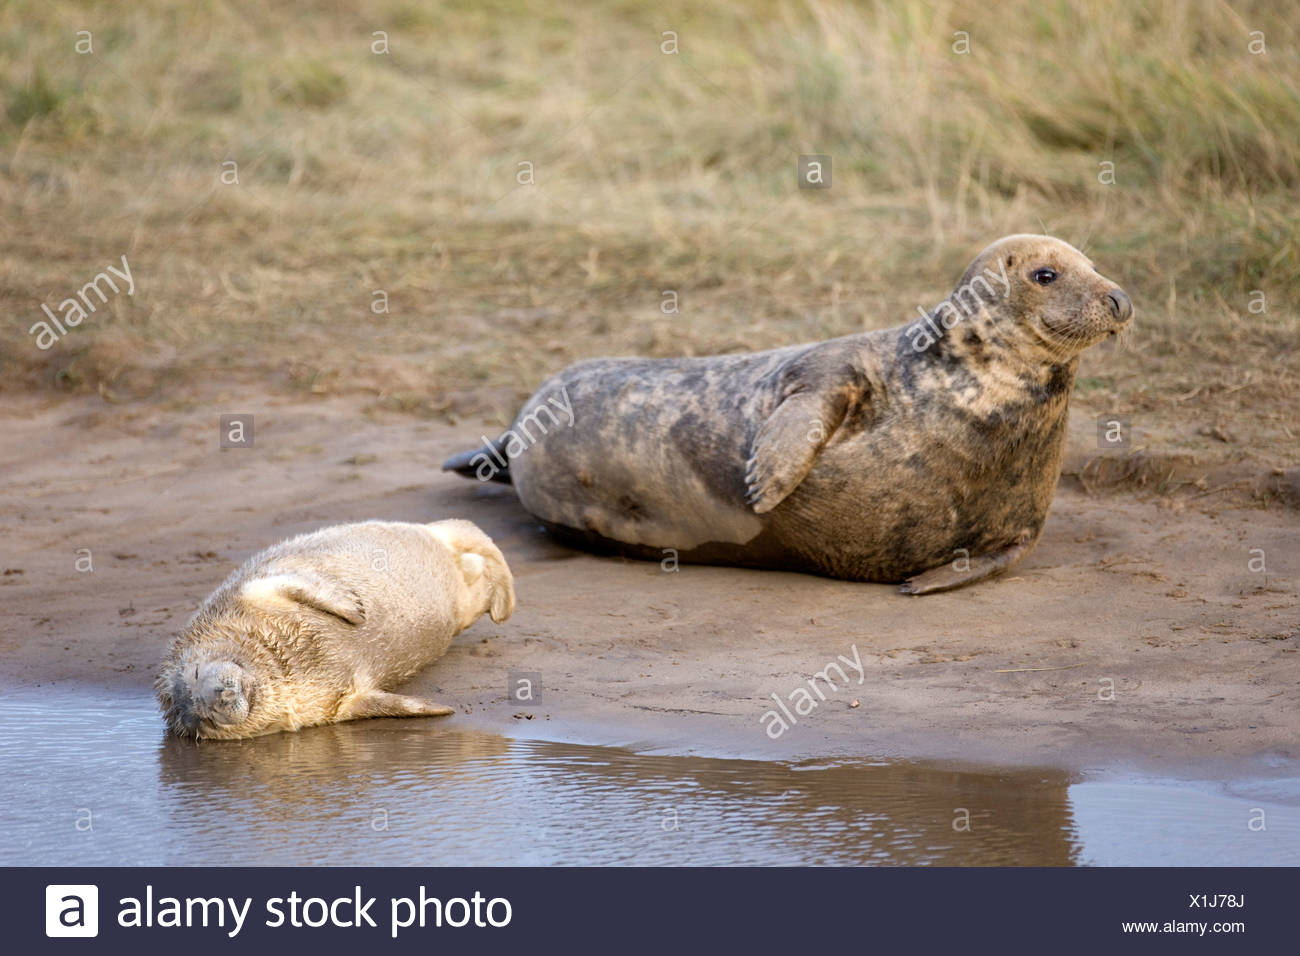 Gray Seal (Halichoerus Grypus), Donna Nook, Lincolnshire, England; Seal And Seal Pup Resting On The Ground - Stock Image